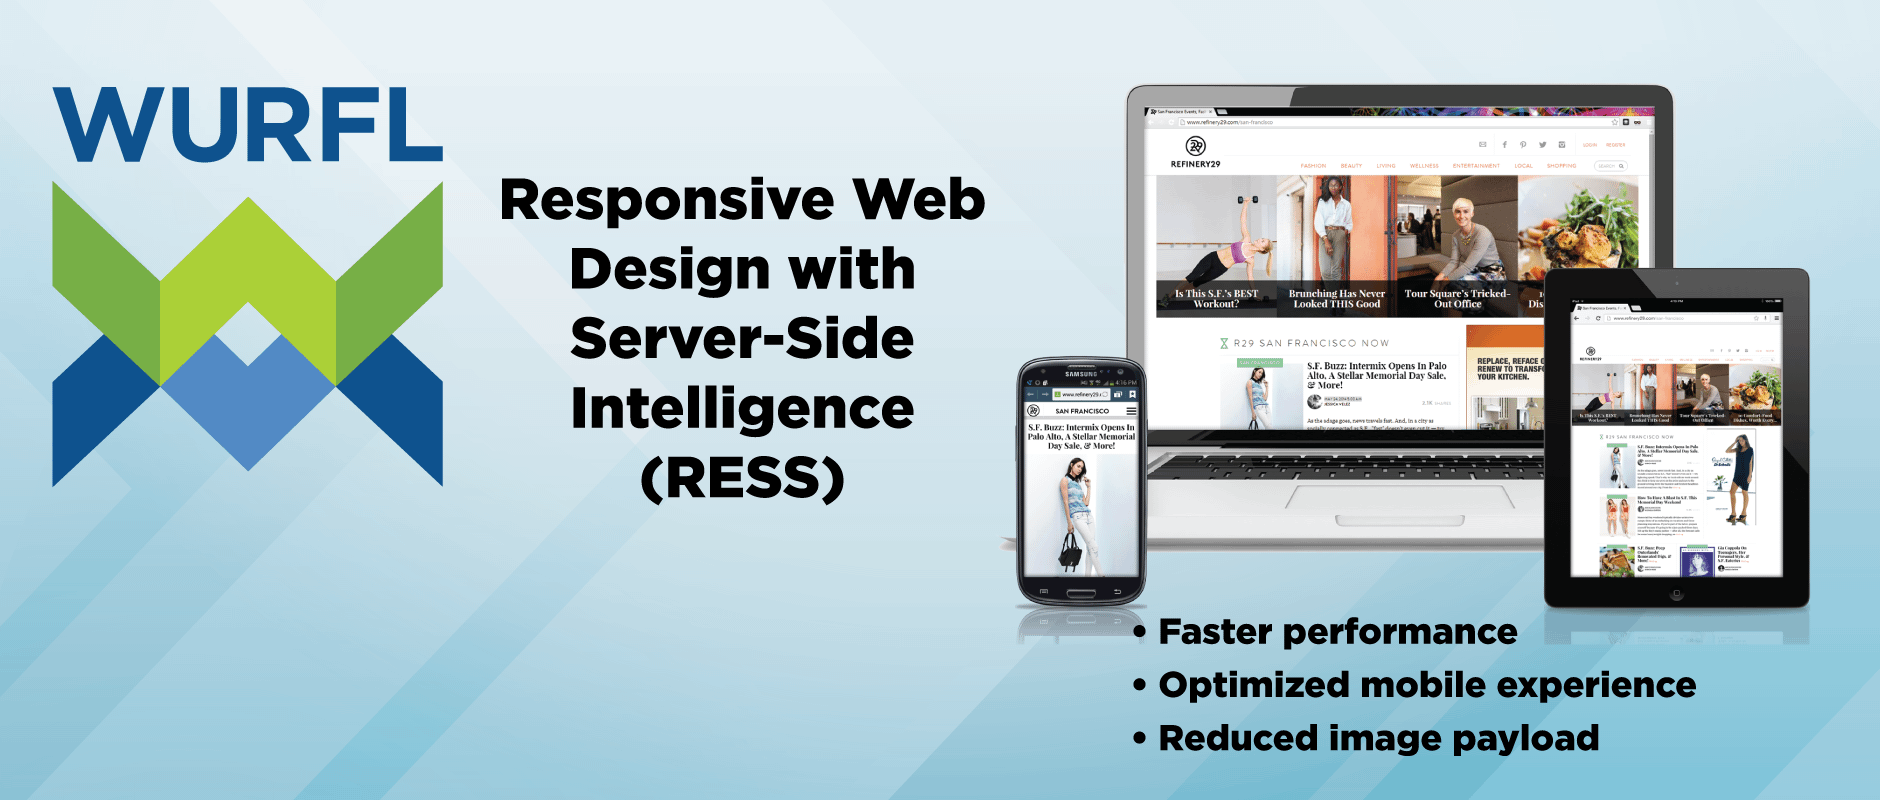 RESS Responsive Web Design with Server Side Detection, Mobile optimization